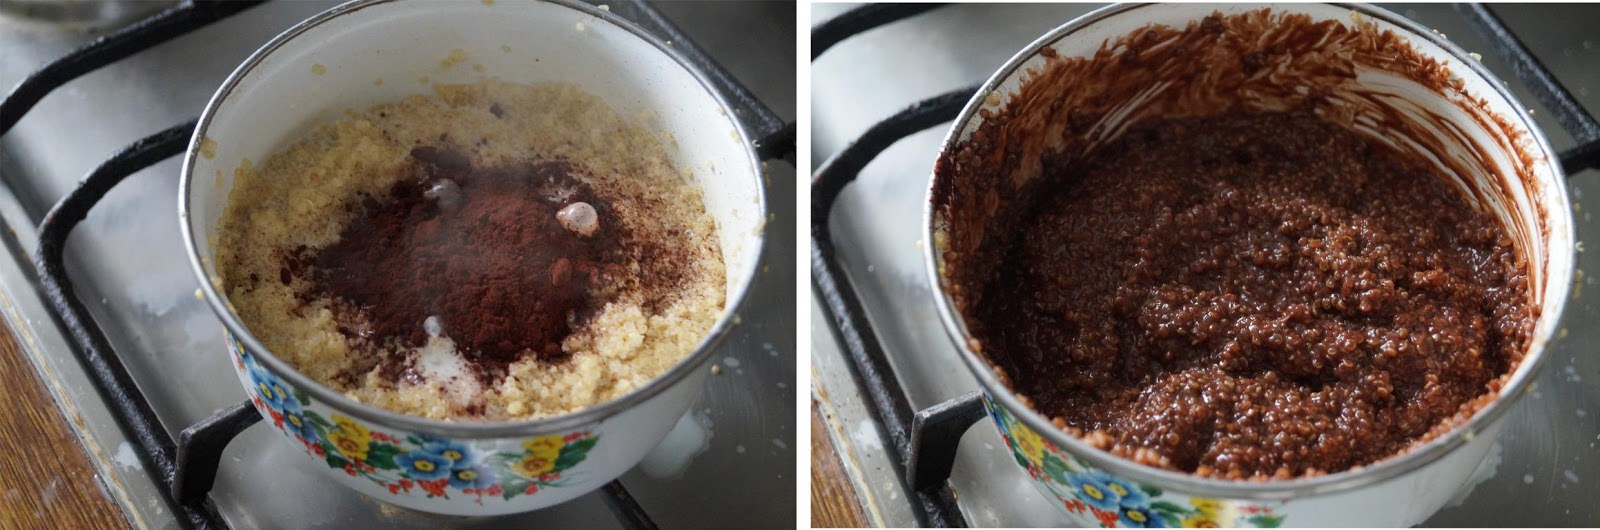 choco quinoa breakfast pudding recipe with step by step photos.